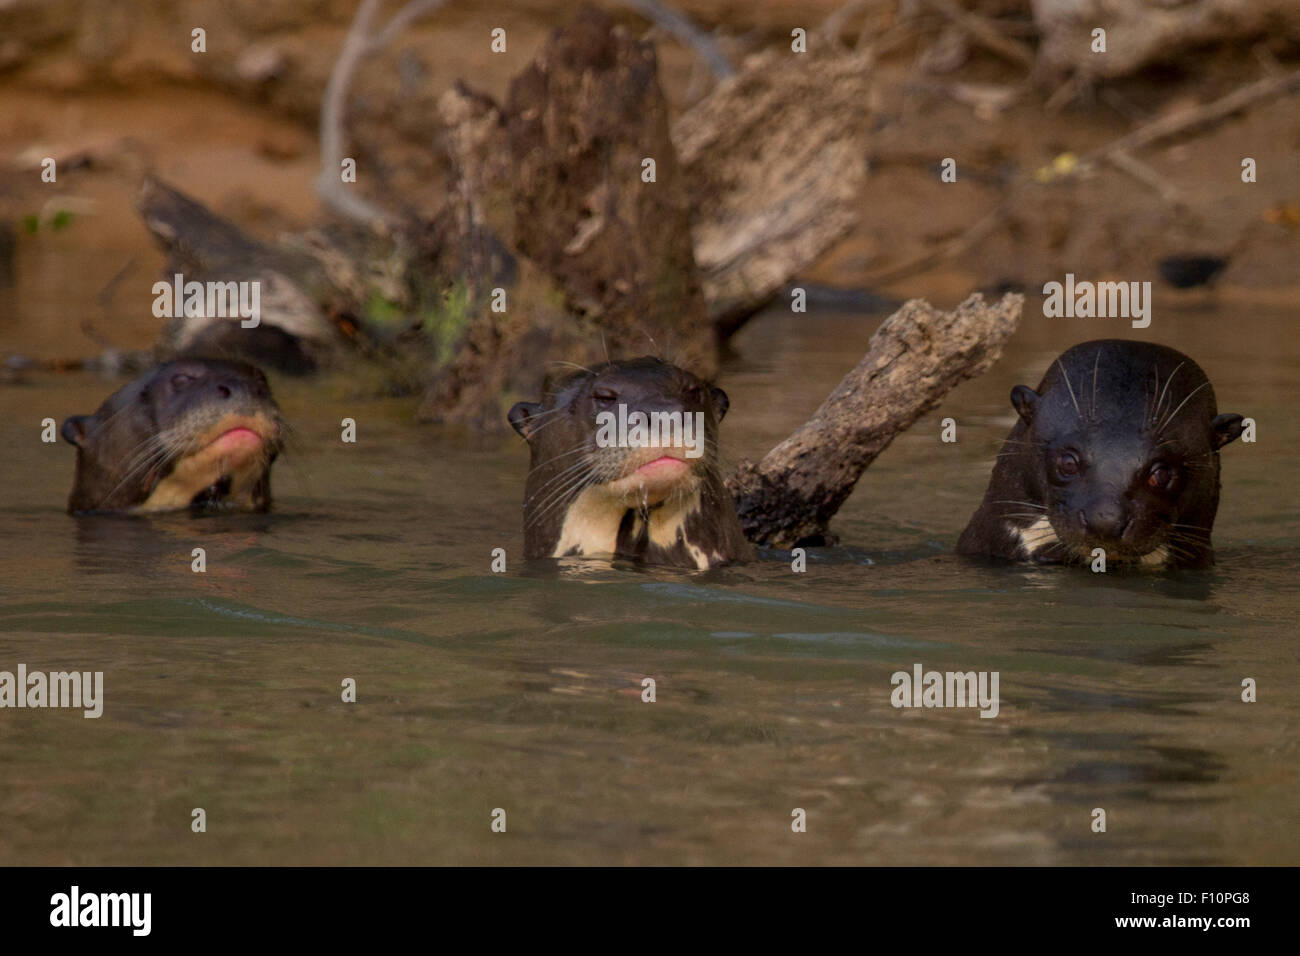 Giant River Otters on the Paraguay River in the Pantanal in Brazil - Stock Image